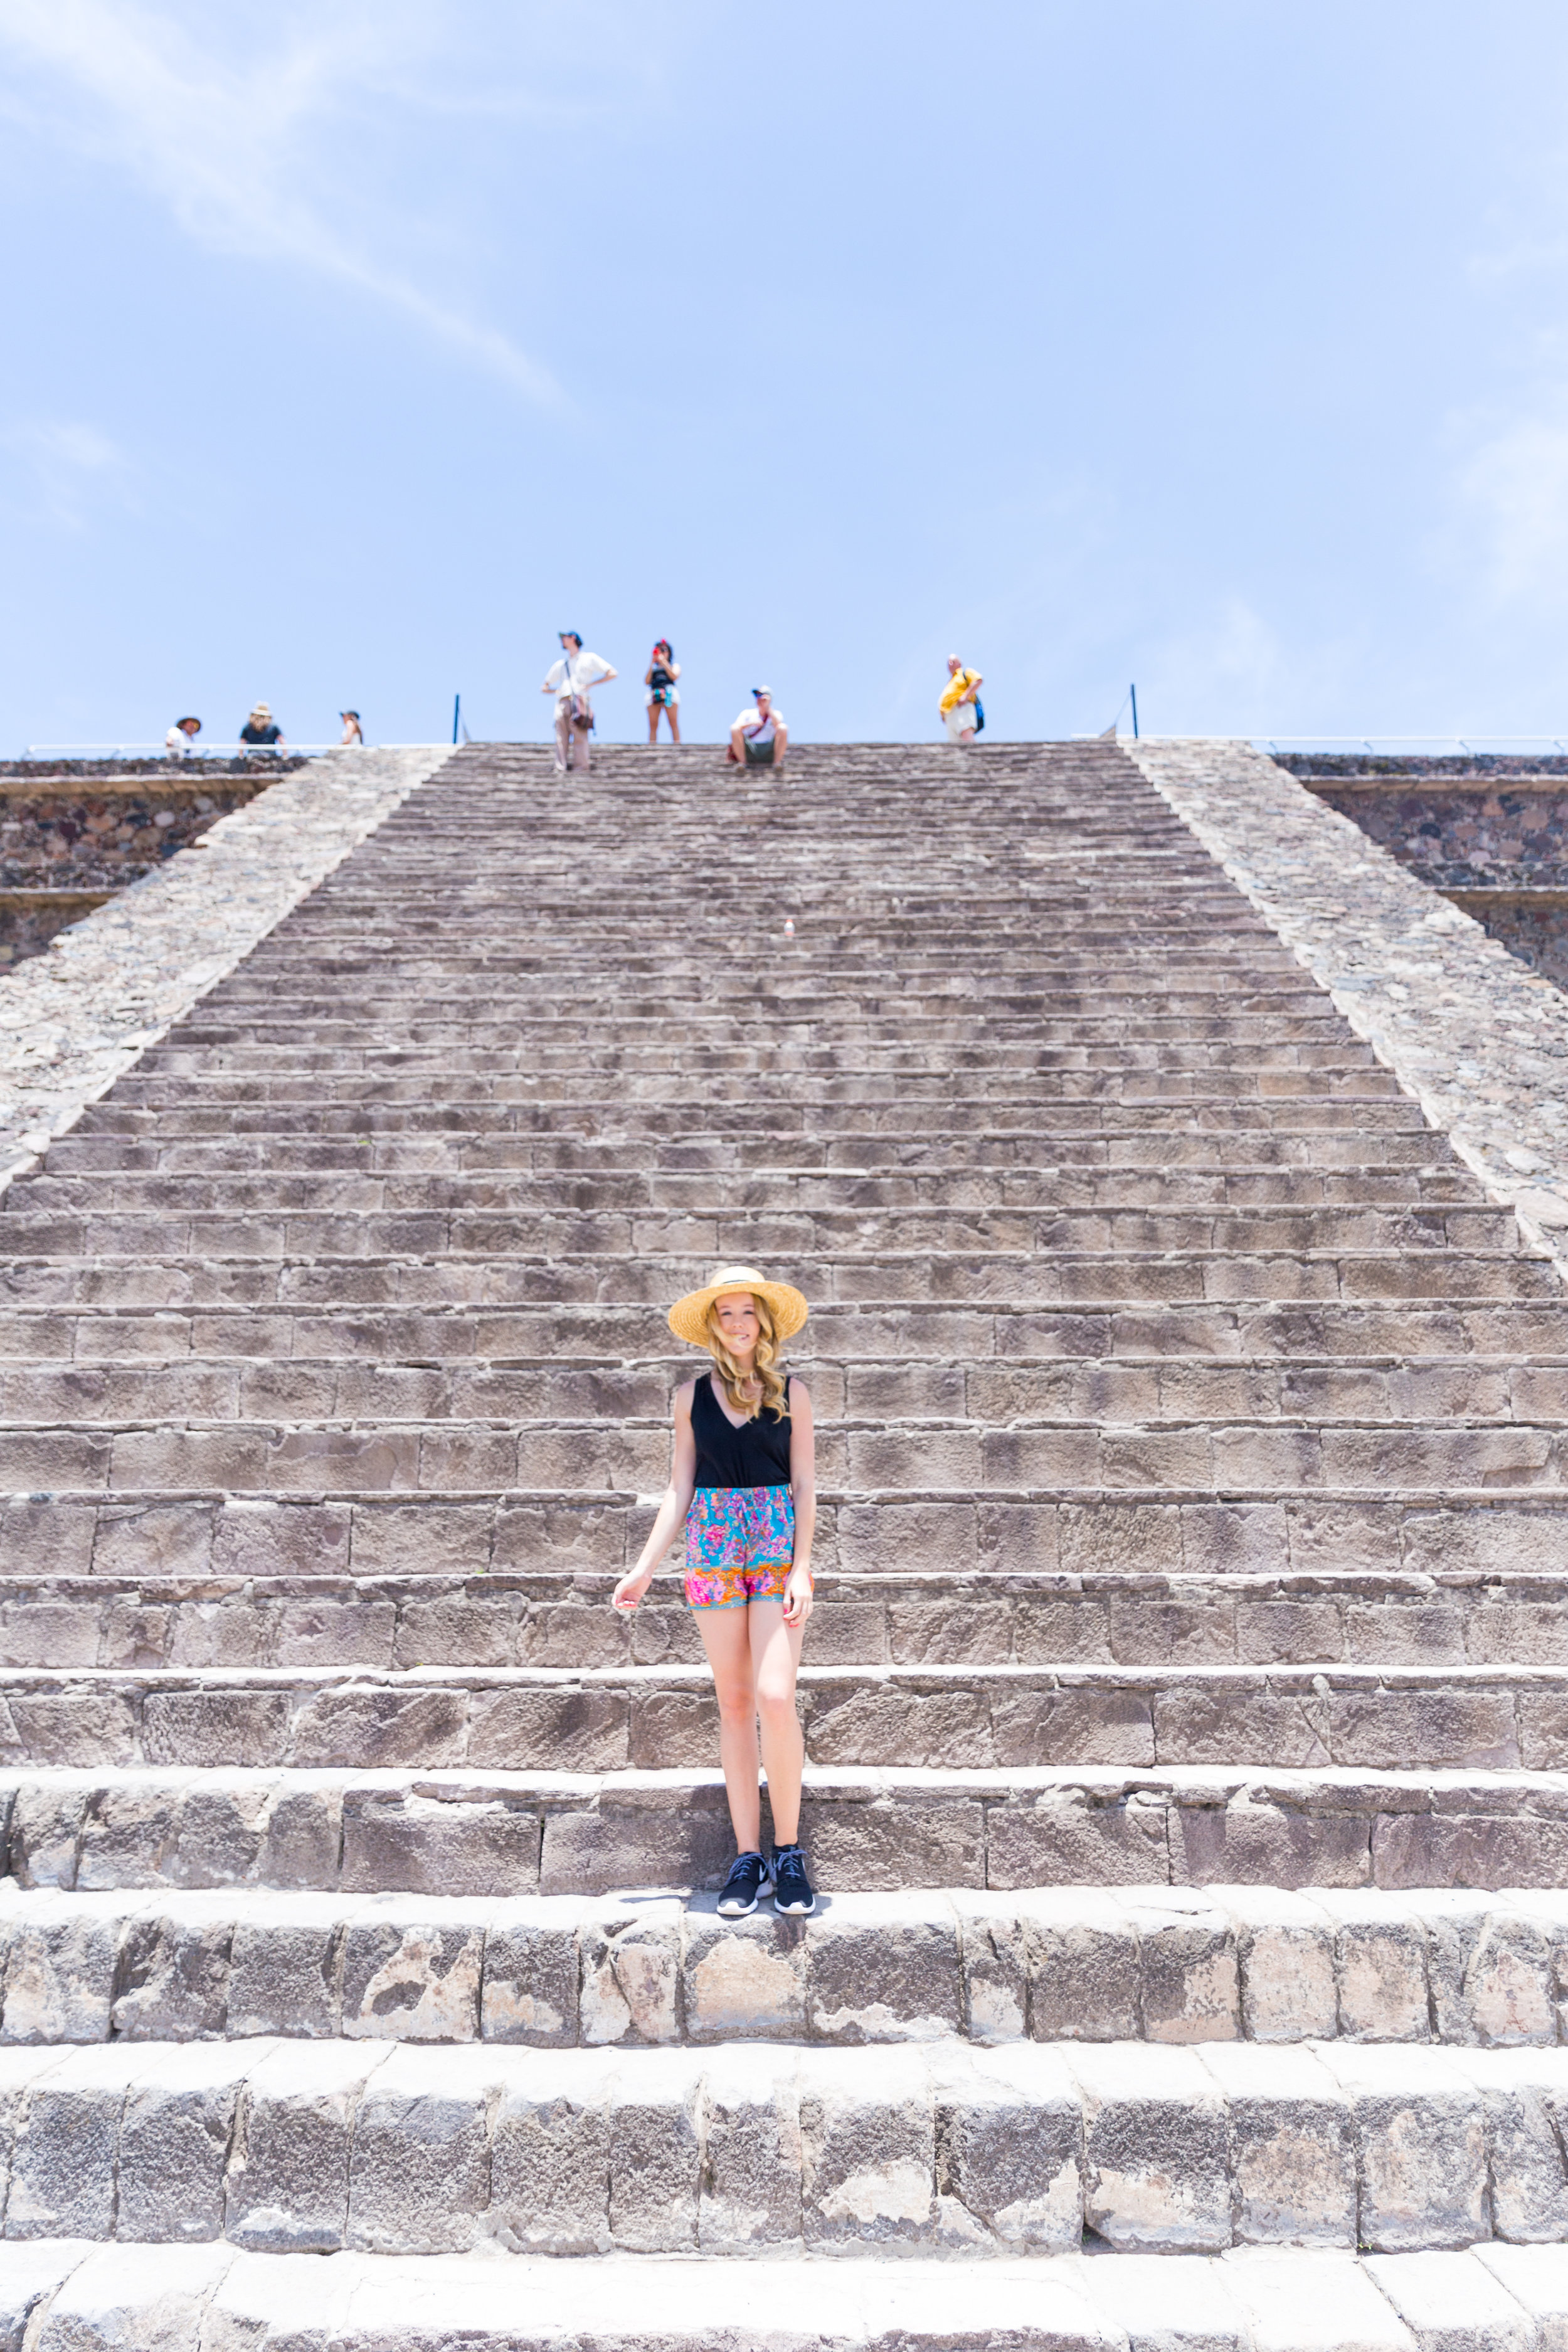 Mexico City Teotihuacan Pyramids Pattern Shorts Casual Summer Outfit-2.jpg